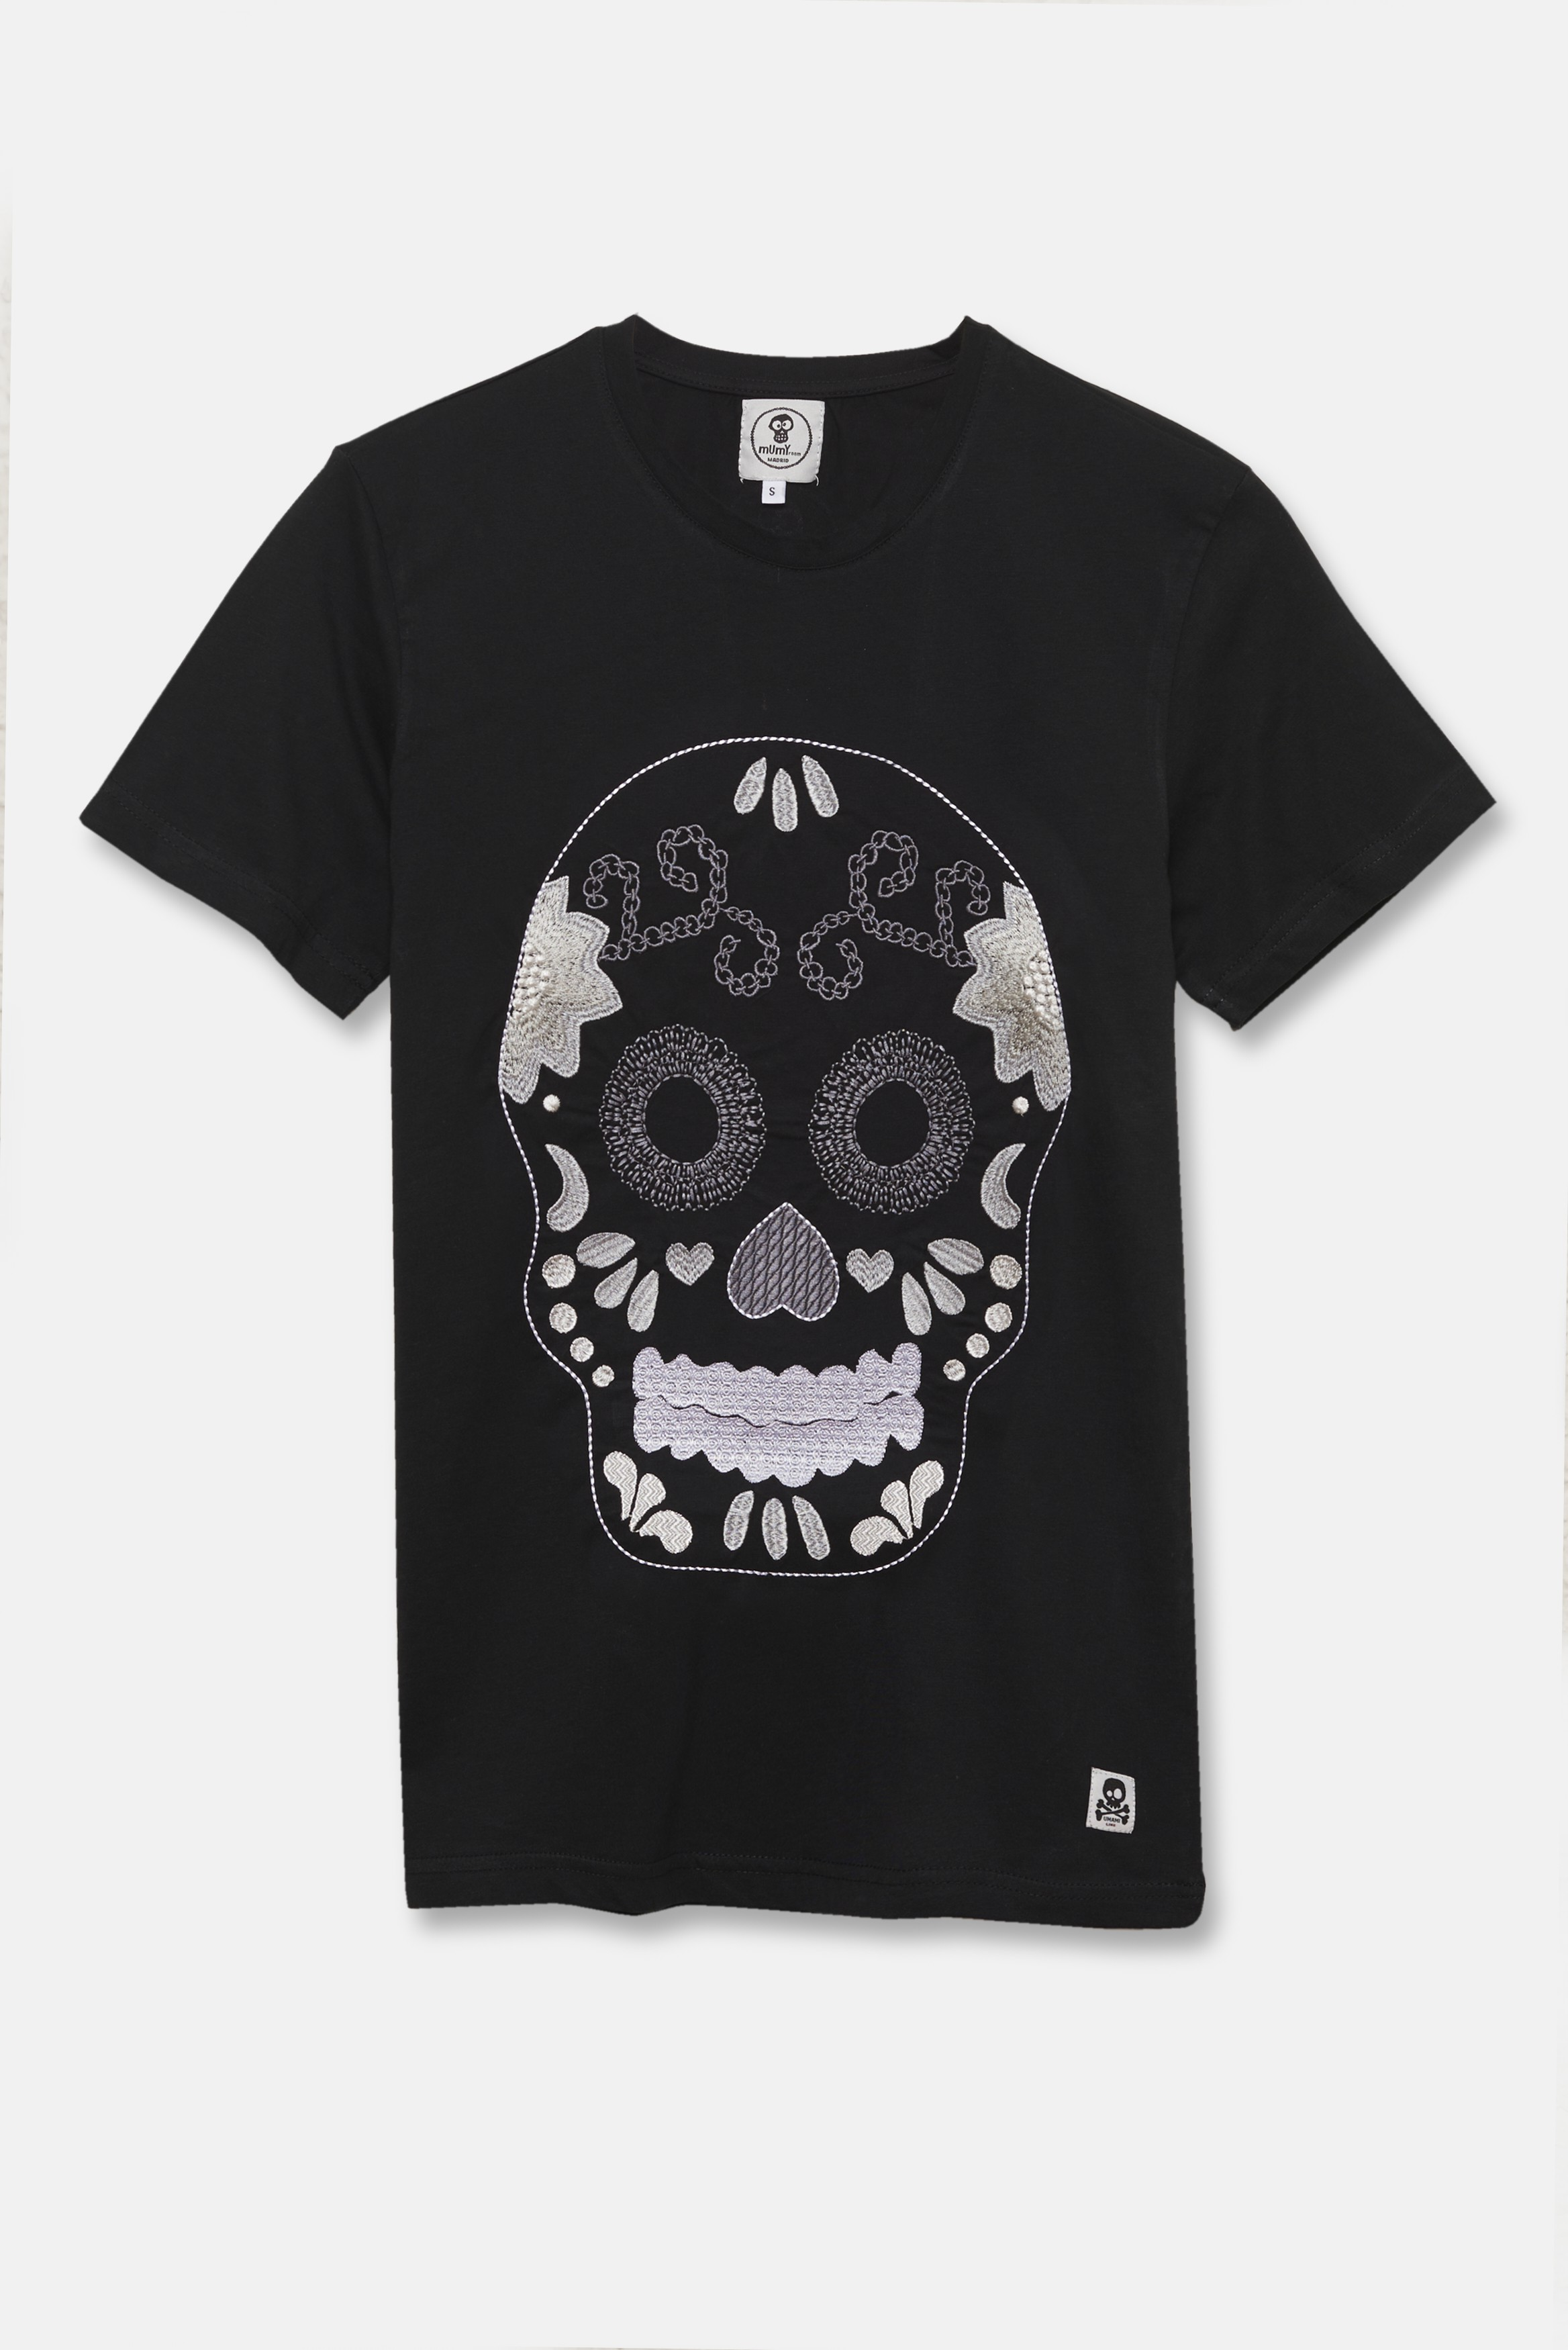 ADULT´S EMBROIDERED T-SHIRT SKULL AND FLOWERS IN BLACK